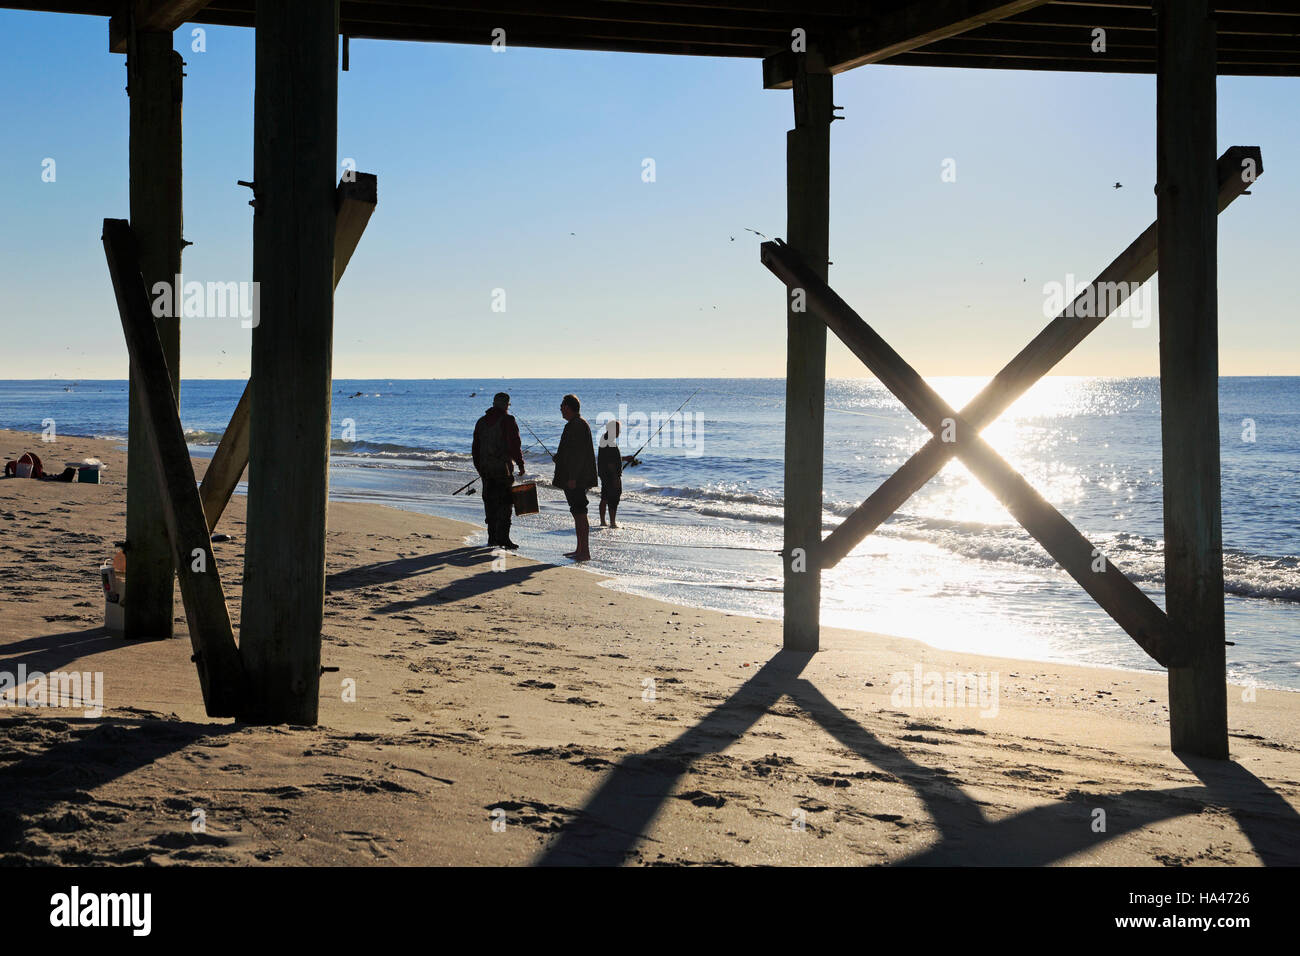 silhouette-of-fishermen-on-the-beach-in-